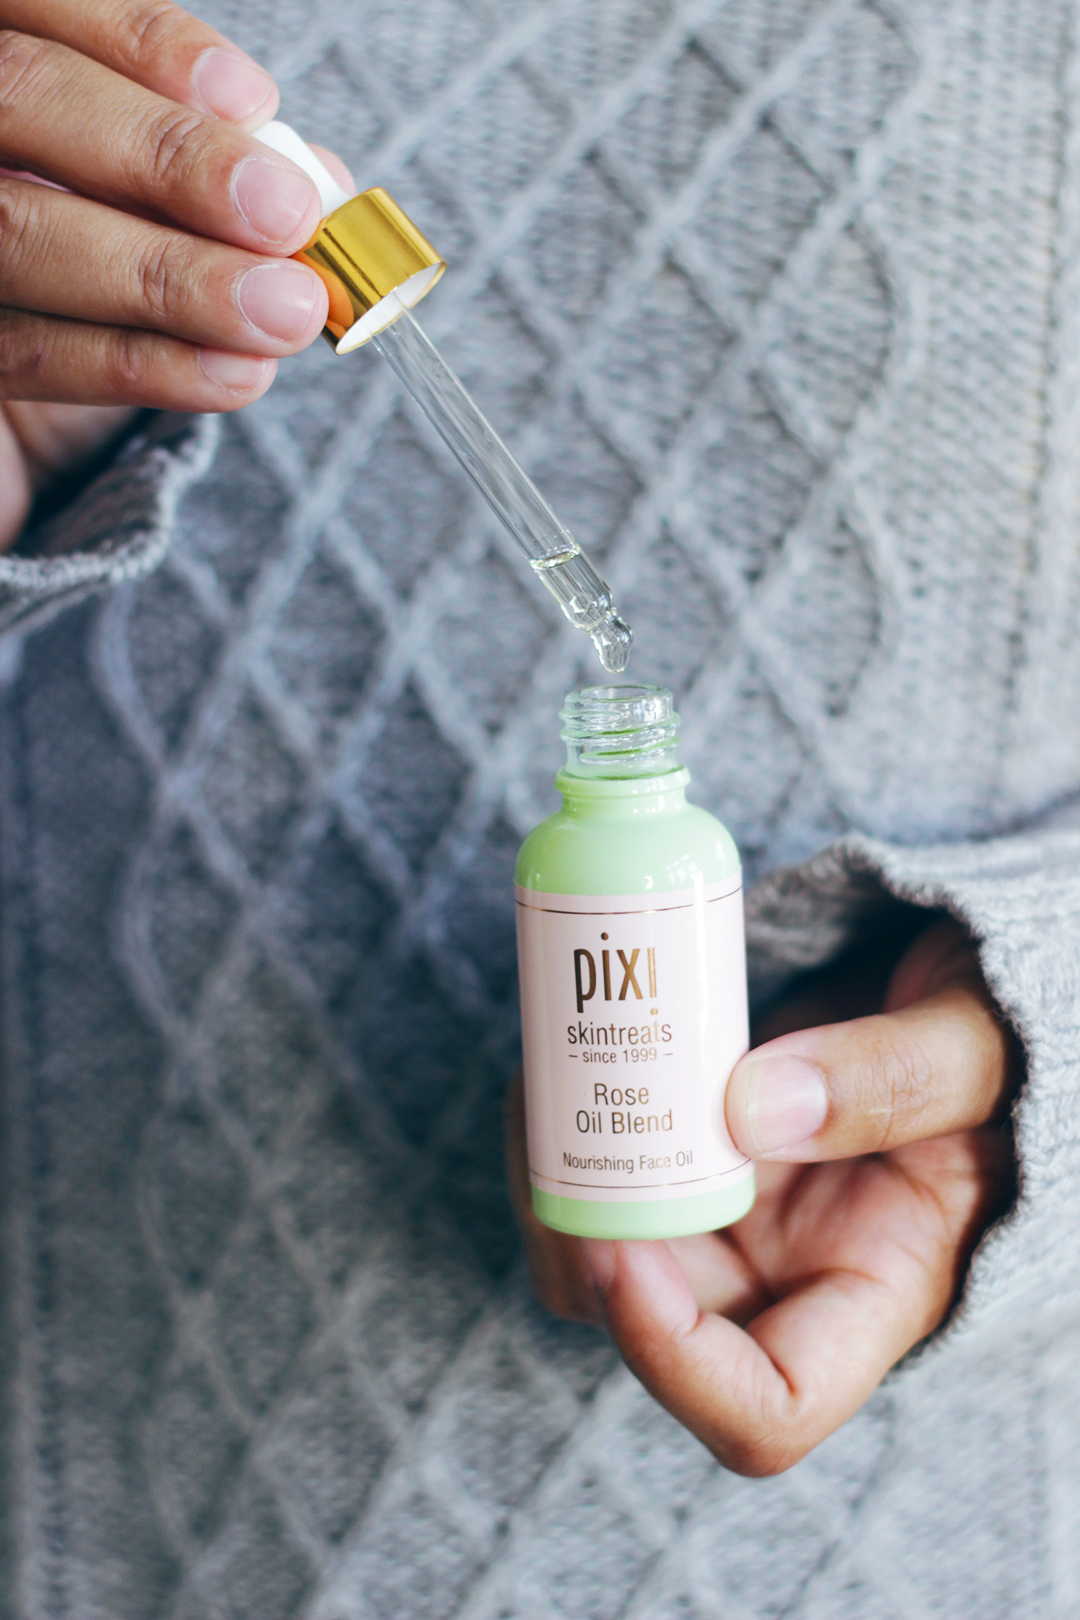 Confused about what new beautyb trend to try or what they exactly are? Keep reading as Jamie breaks down the new beauty buzzwords that have hit the beauty aisles- Makeup Life and Love-Beauty Buzzwords- Pixi Beauty Skintreats Overnight Glow Serum- #TargetStyle - #ad - #mybeautybytarget